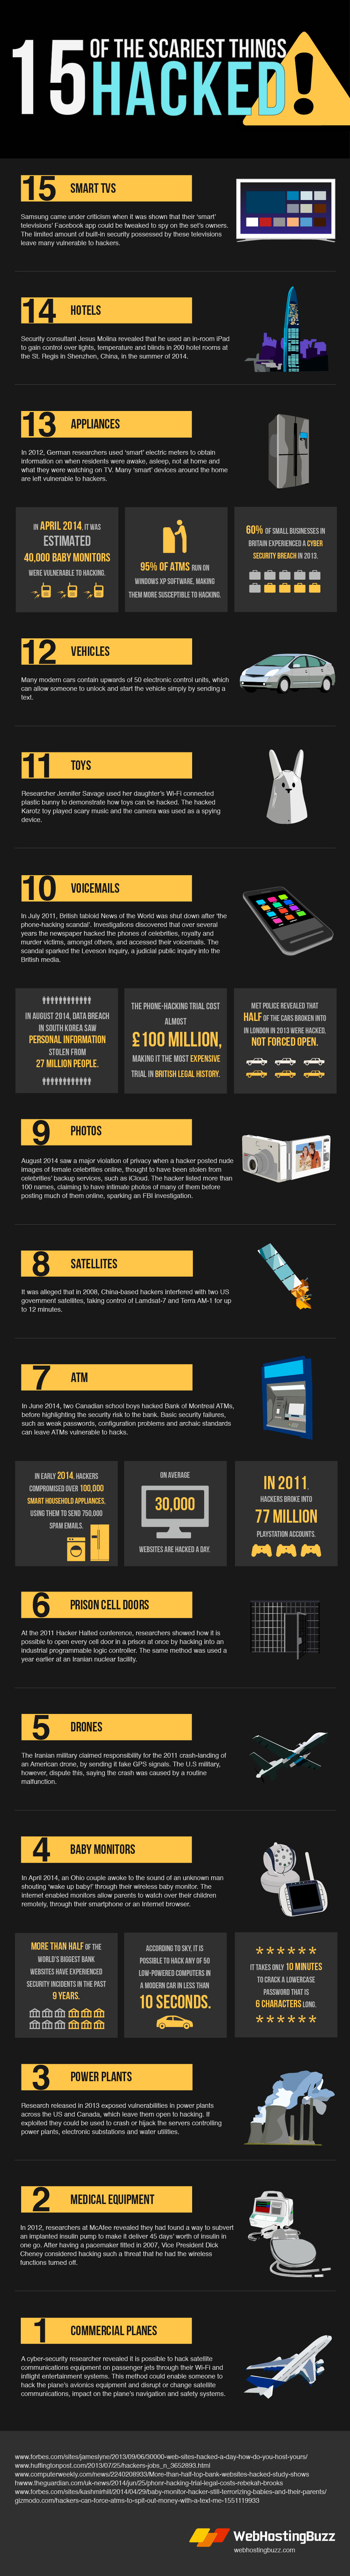 15 of the Scariest Things Hacked!